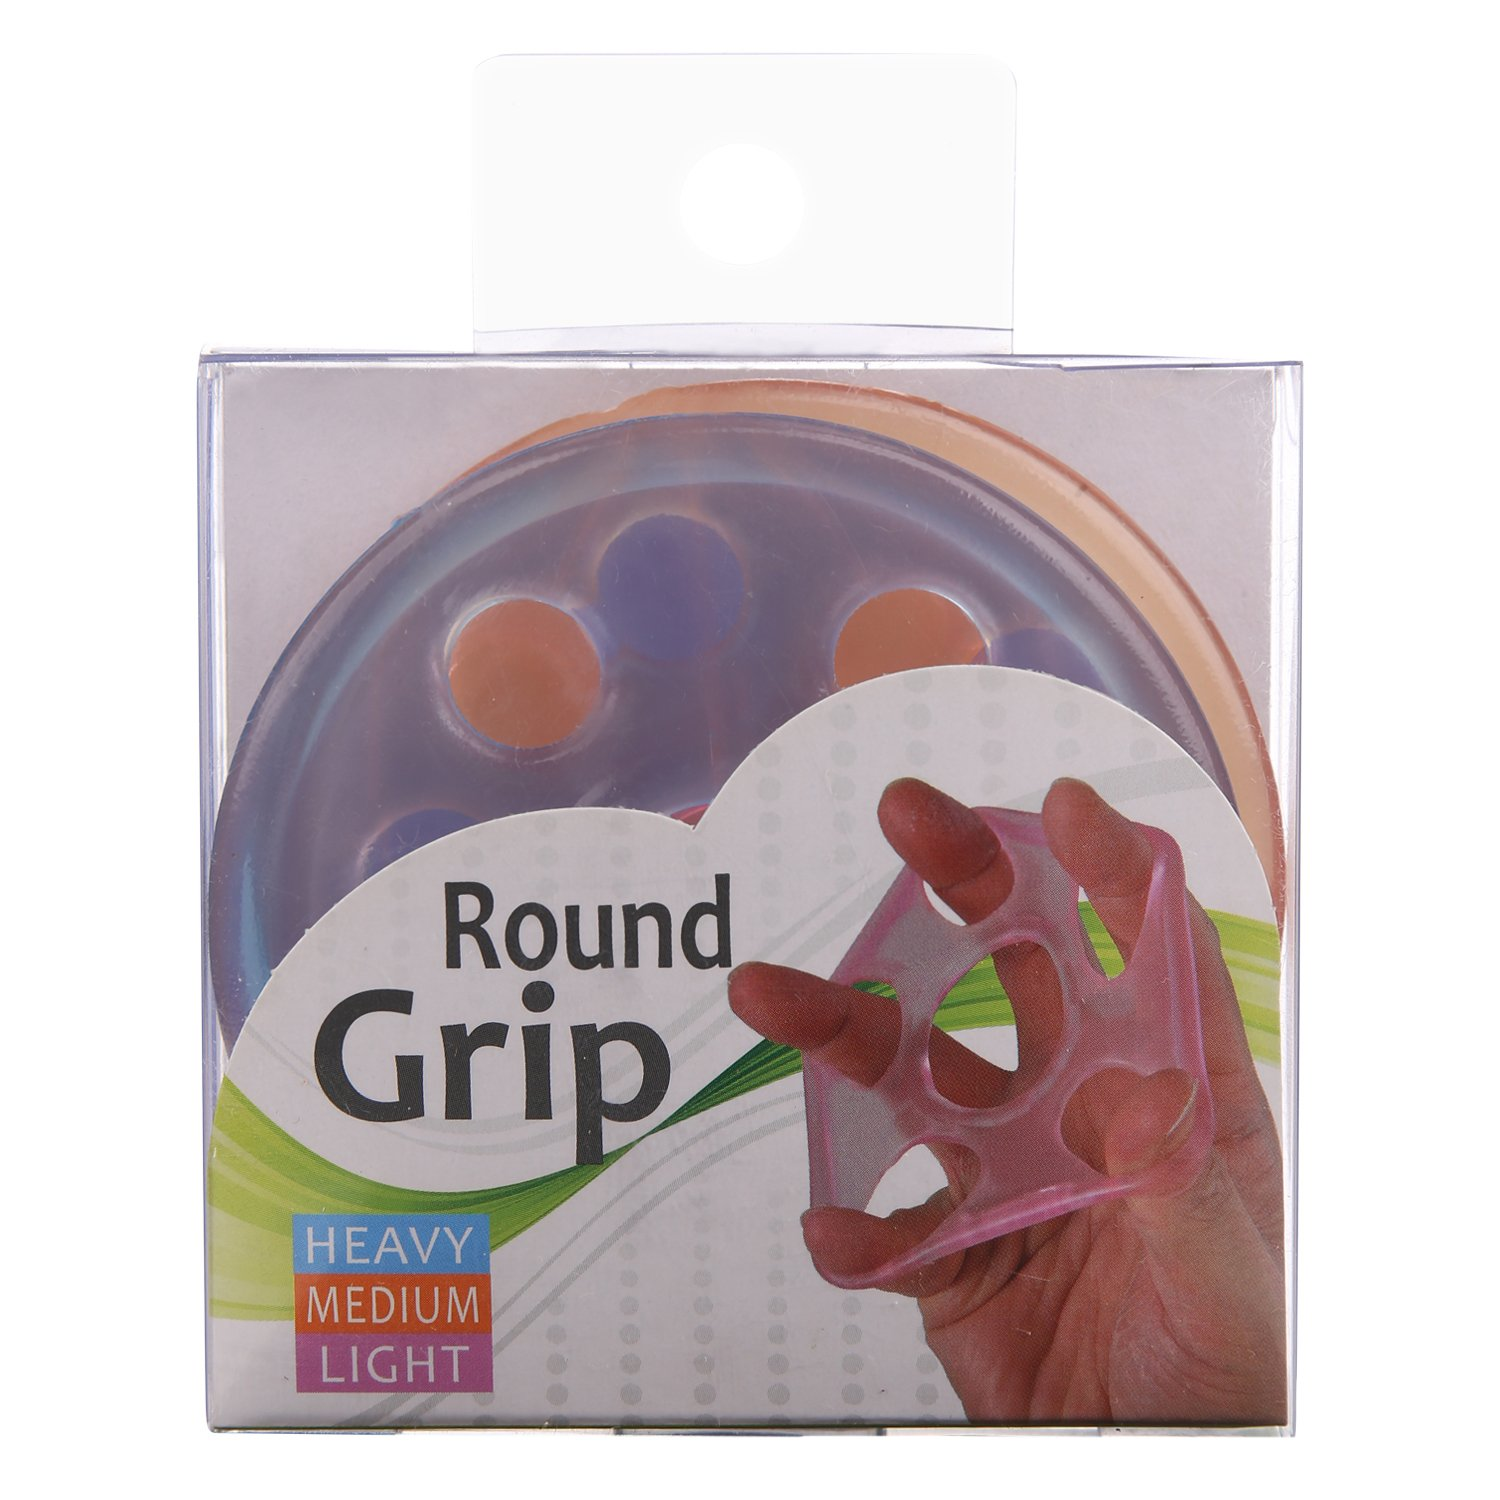 Buy Hand-Band Hand Grip Exercise - Extension & Flexion For Fingers (Heavy,  Medium, Light) Online at Low Prices in India - Amazon.in